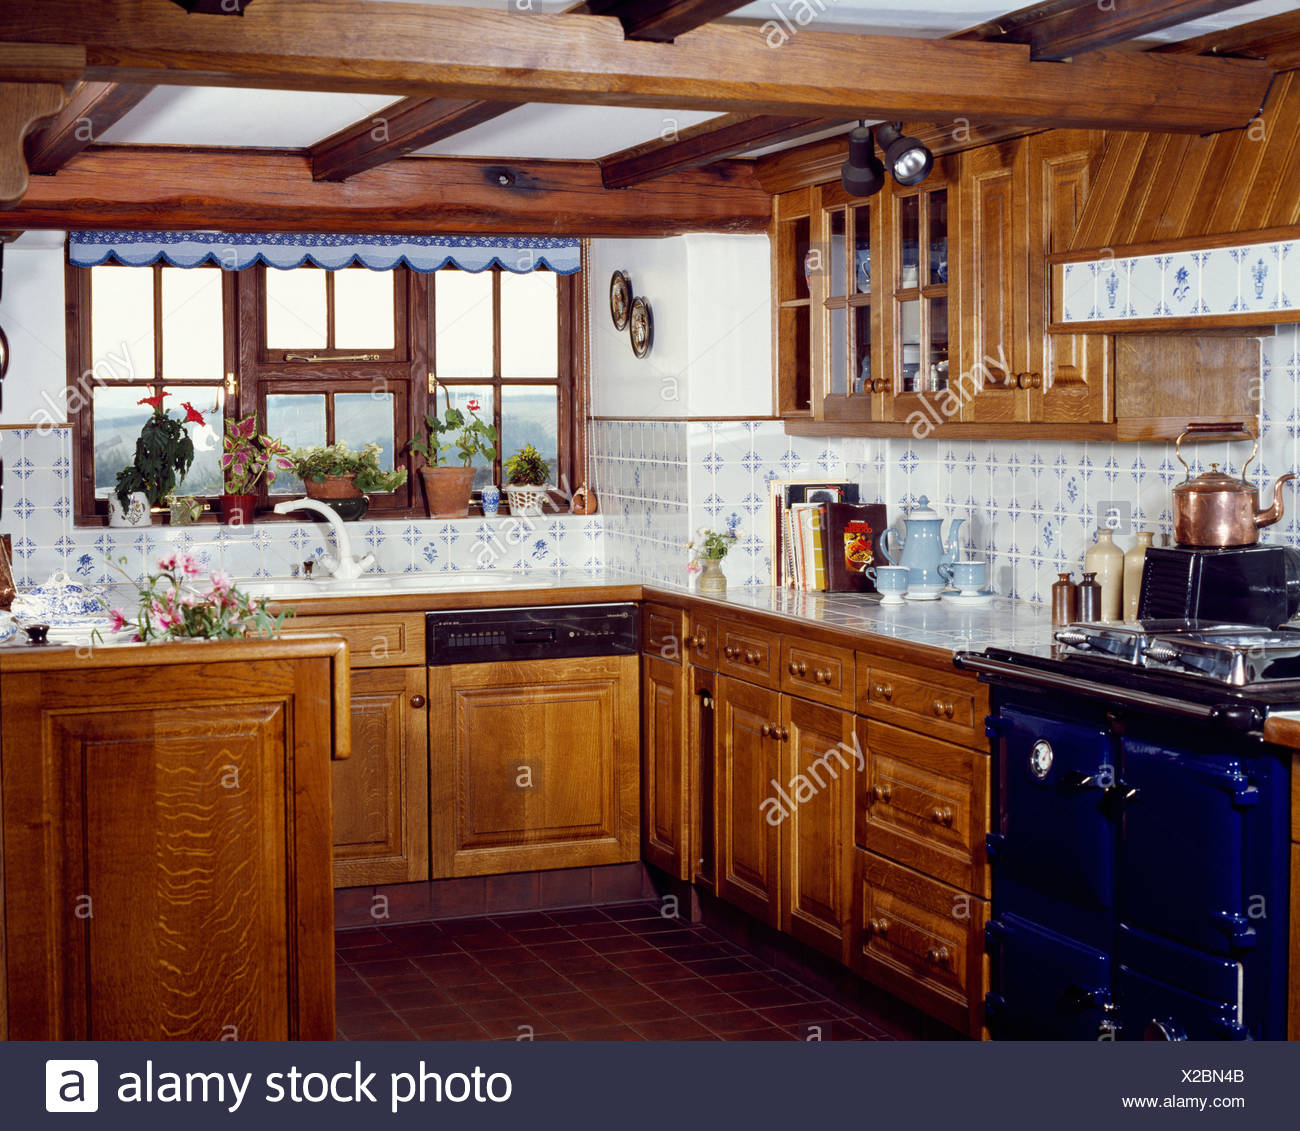 Country Kitchen With Wooden Cupboards And Blue And White Wall Tiles Stock Photo Alamy